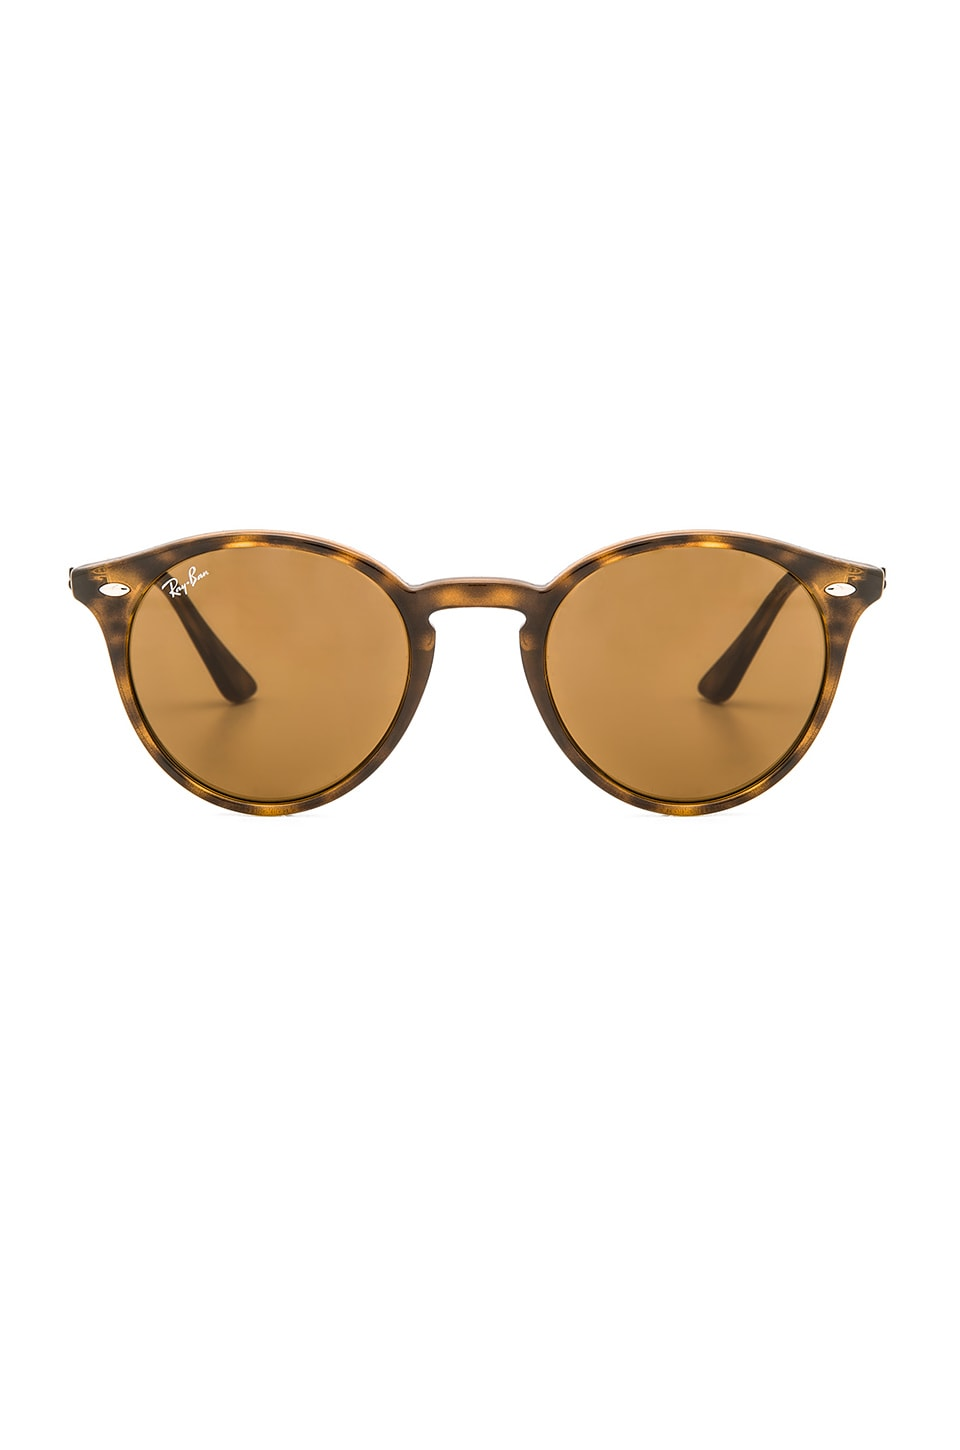 Ray-Ban Round Classic in Tortoise & Brown Classic